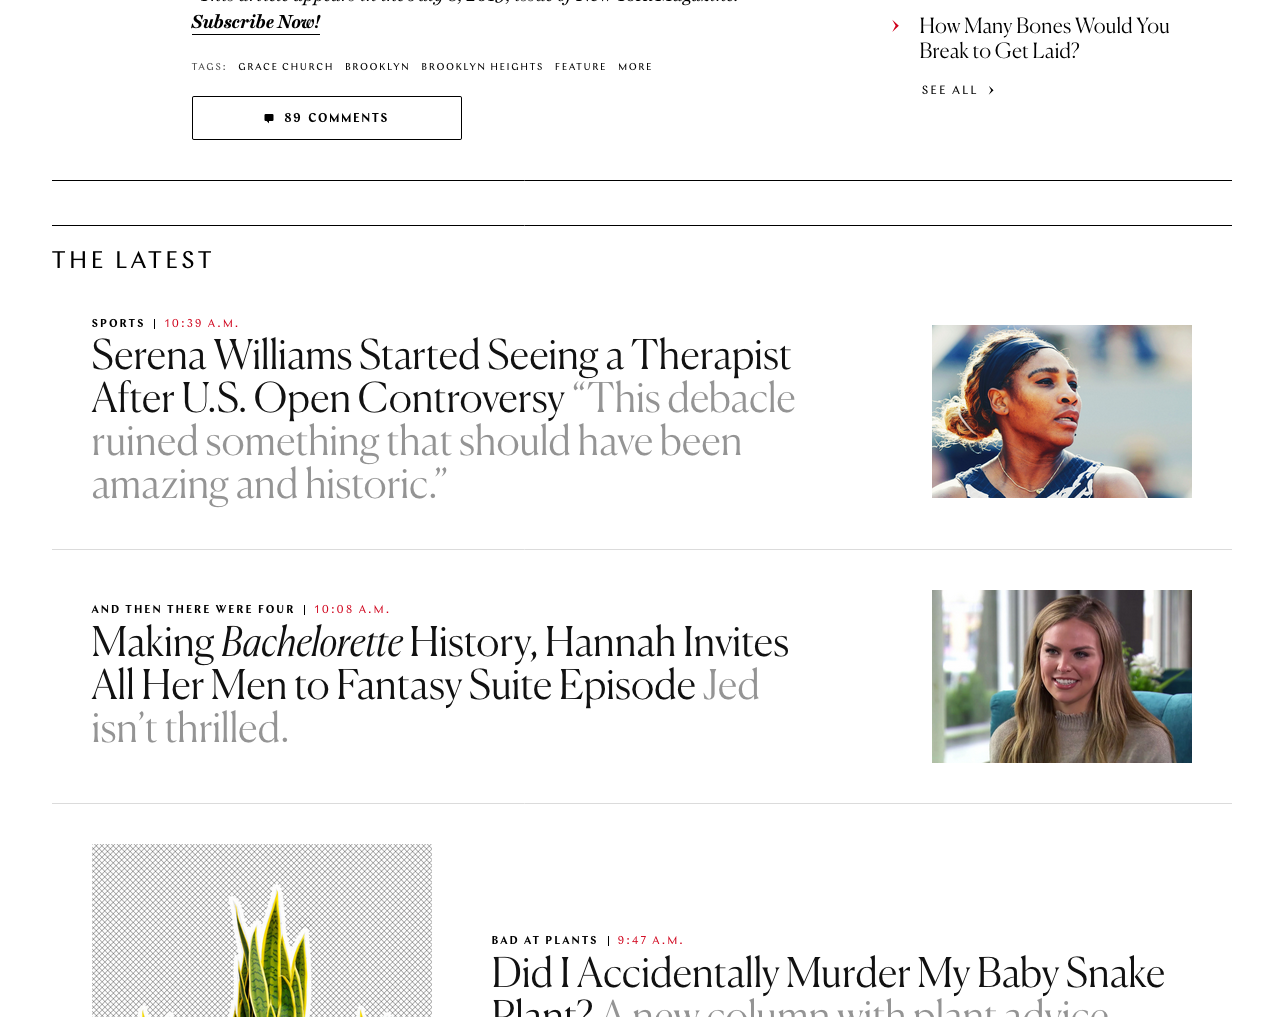 Richer ways to display related content · Issue #79 · Automattic